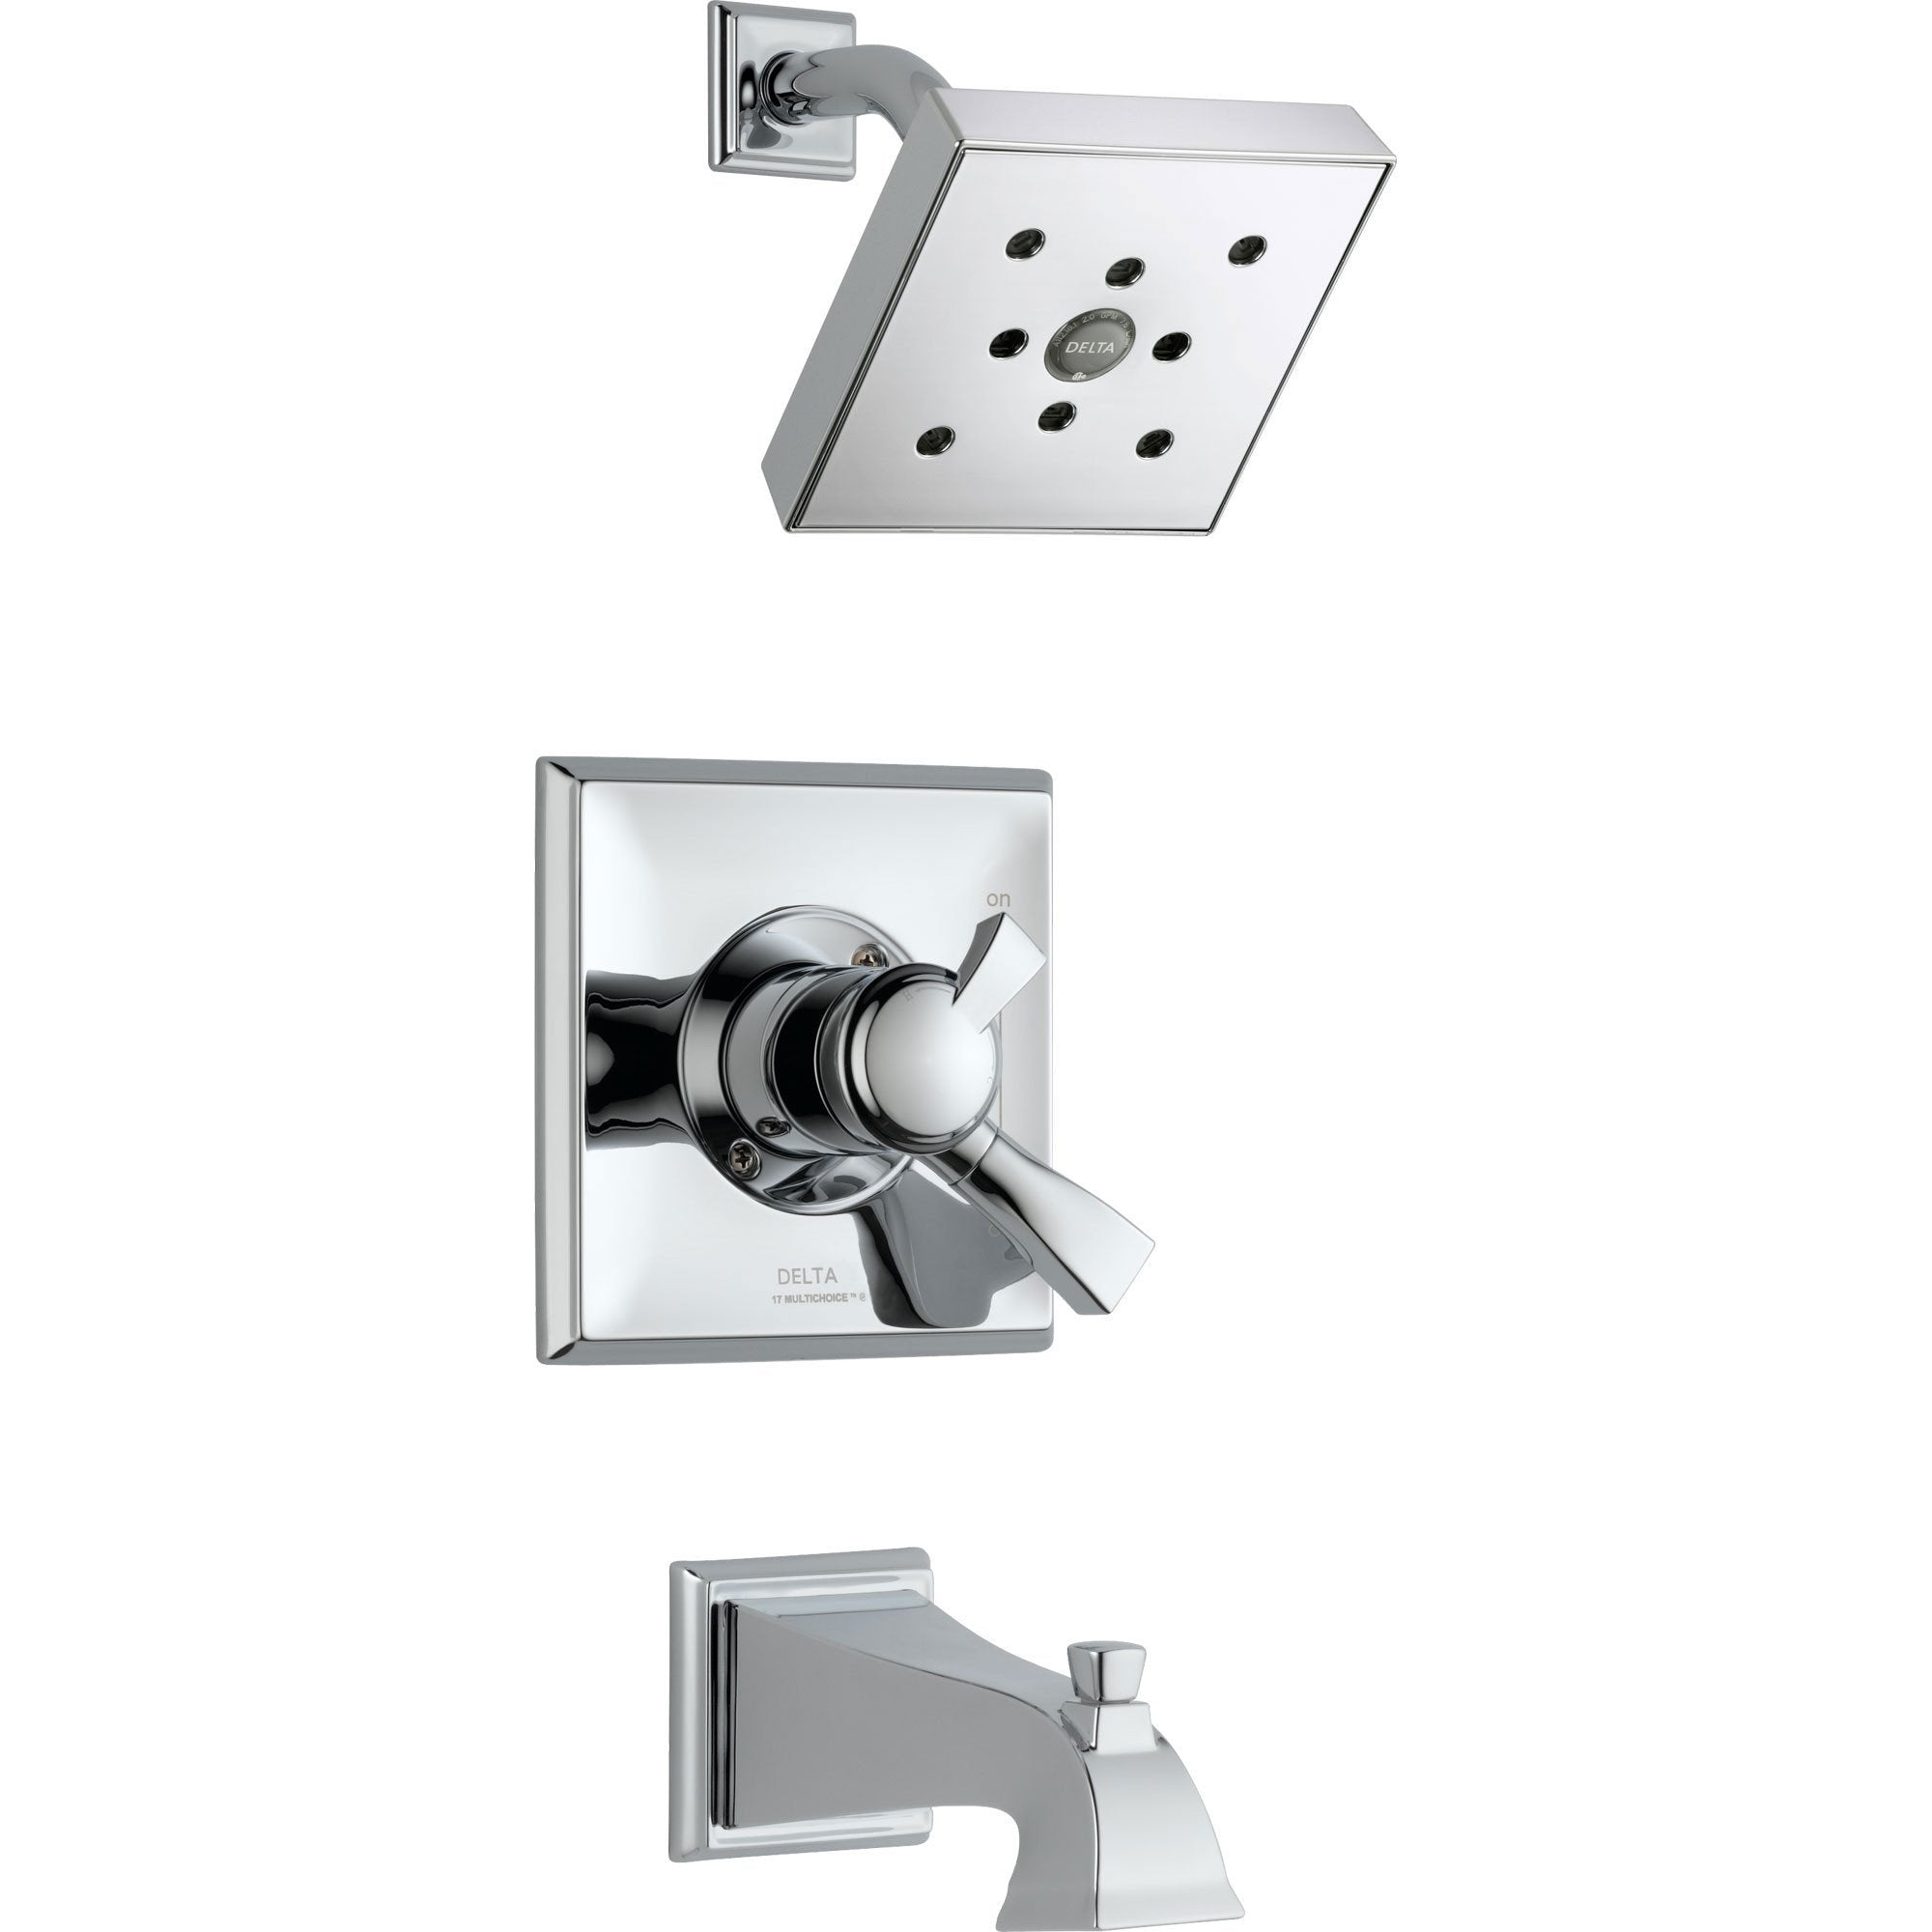 Delta Dryden Temperature/Volume Chrome Tub and Shower Faucet with Valve D440V